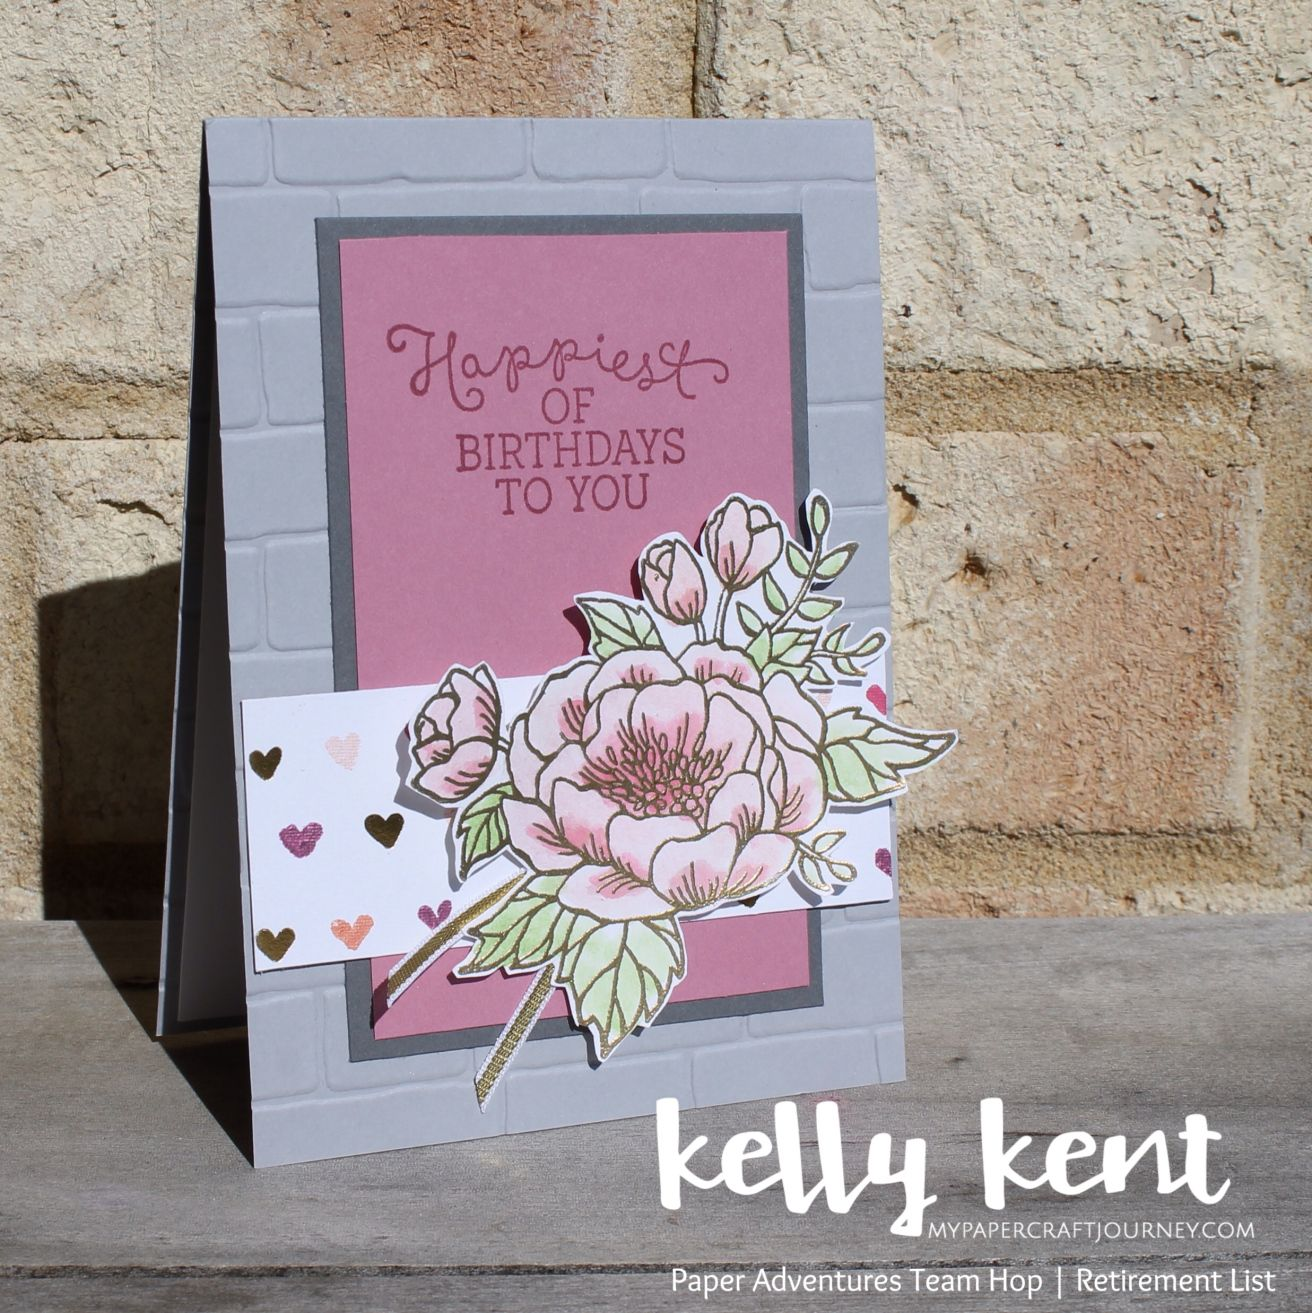 Paper adventures team blog hop birthdays cards and making cards